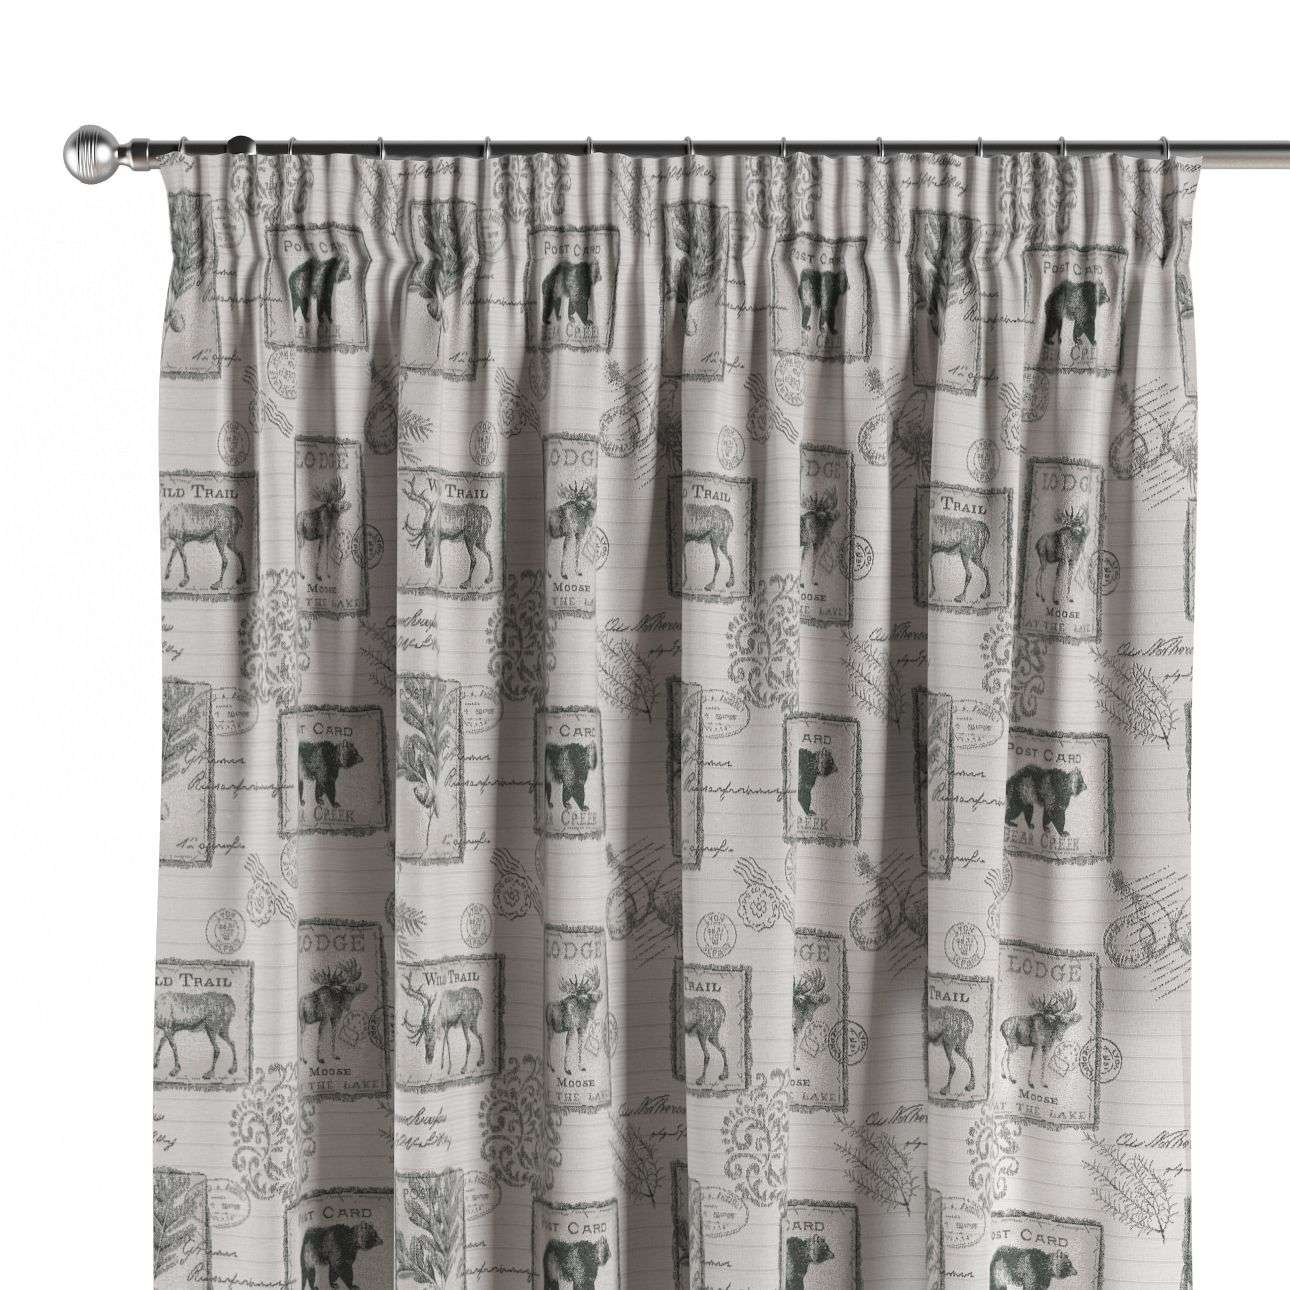 Pencil pleat curtains 130 x 260 cm (51 x 102 inch) in collection Christmas, fabric: 630-18